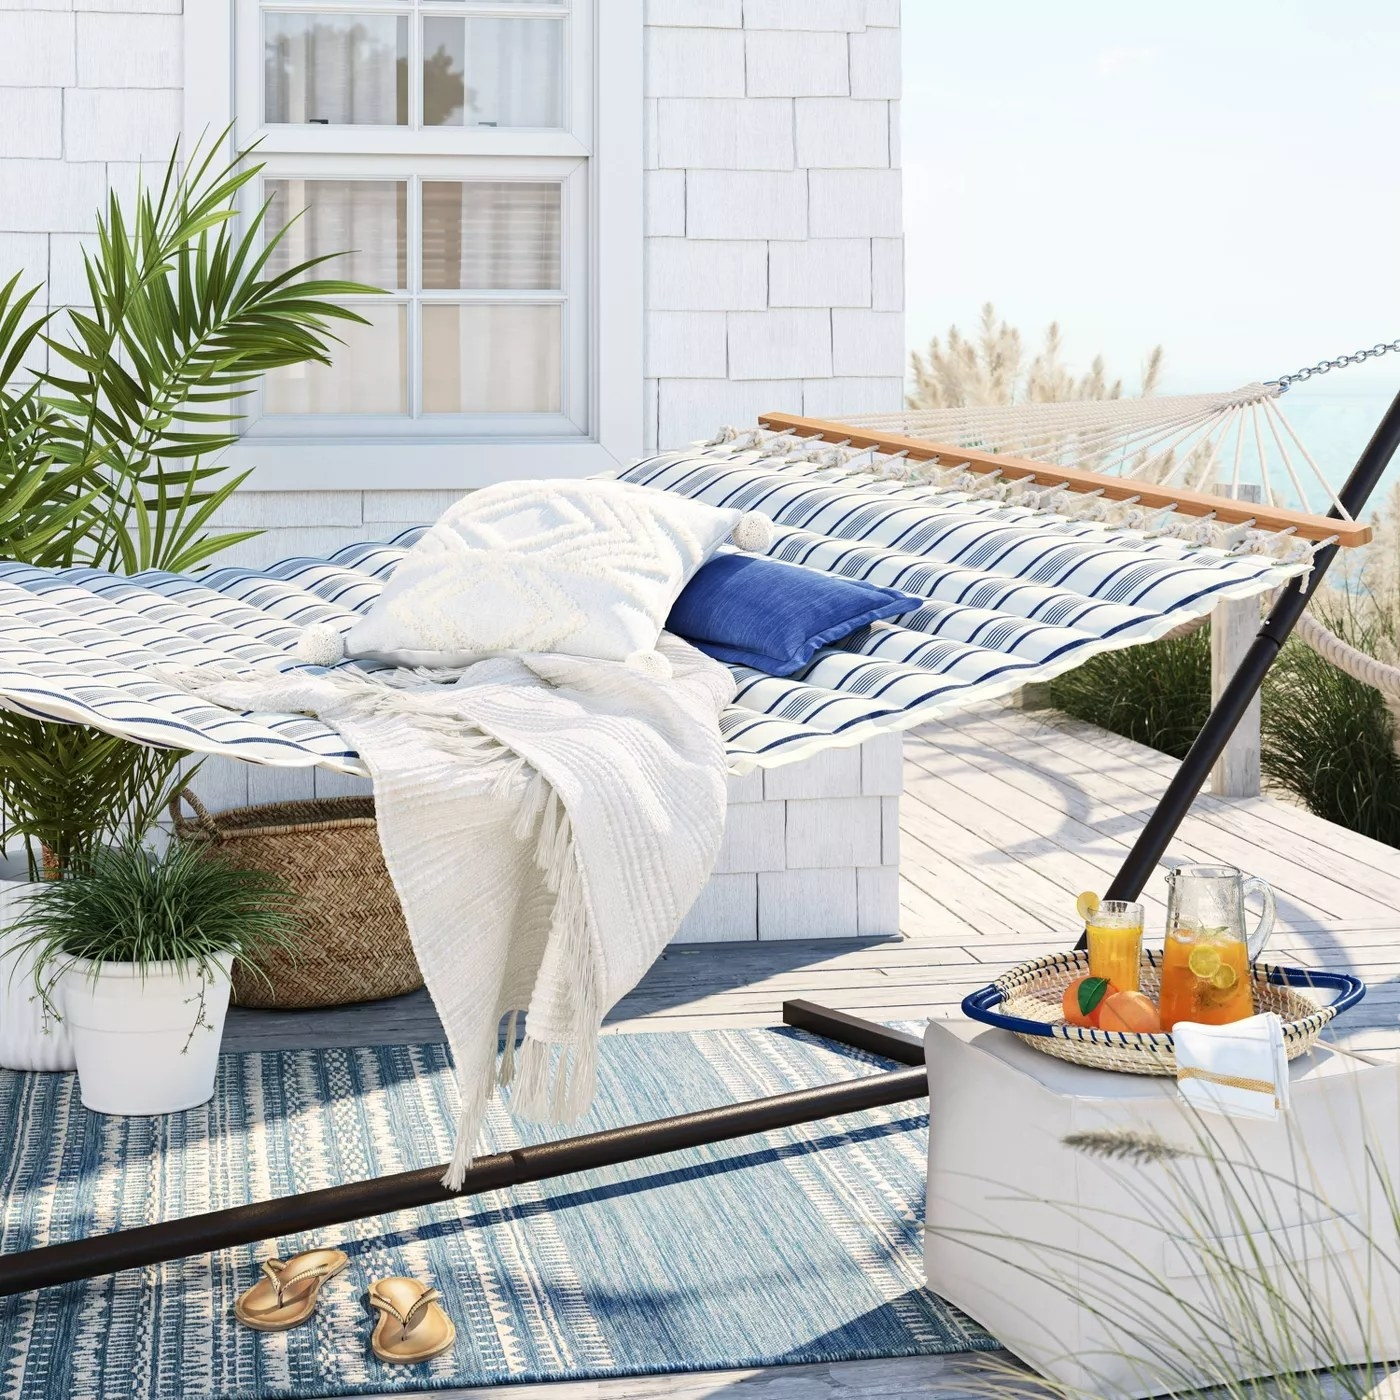 The hammock with a padded top set up on a deck